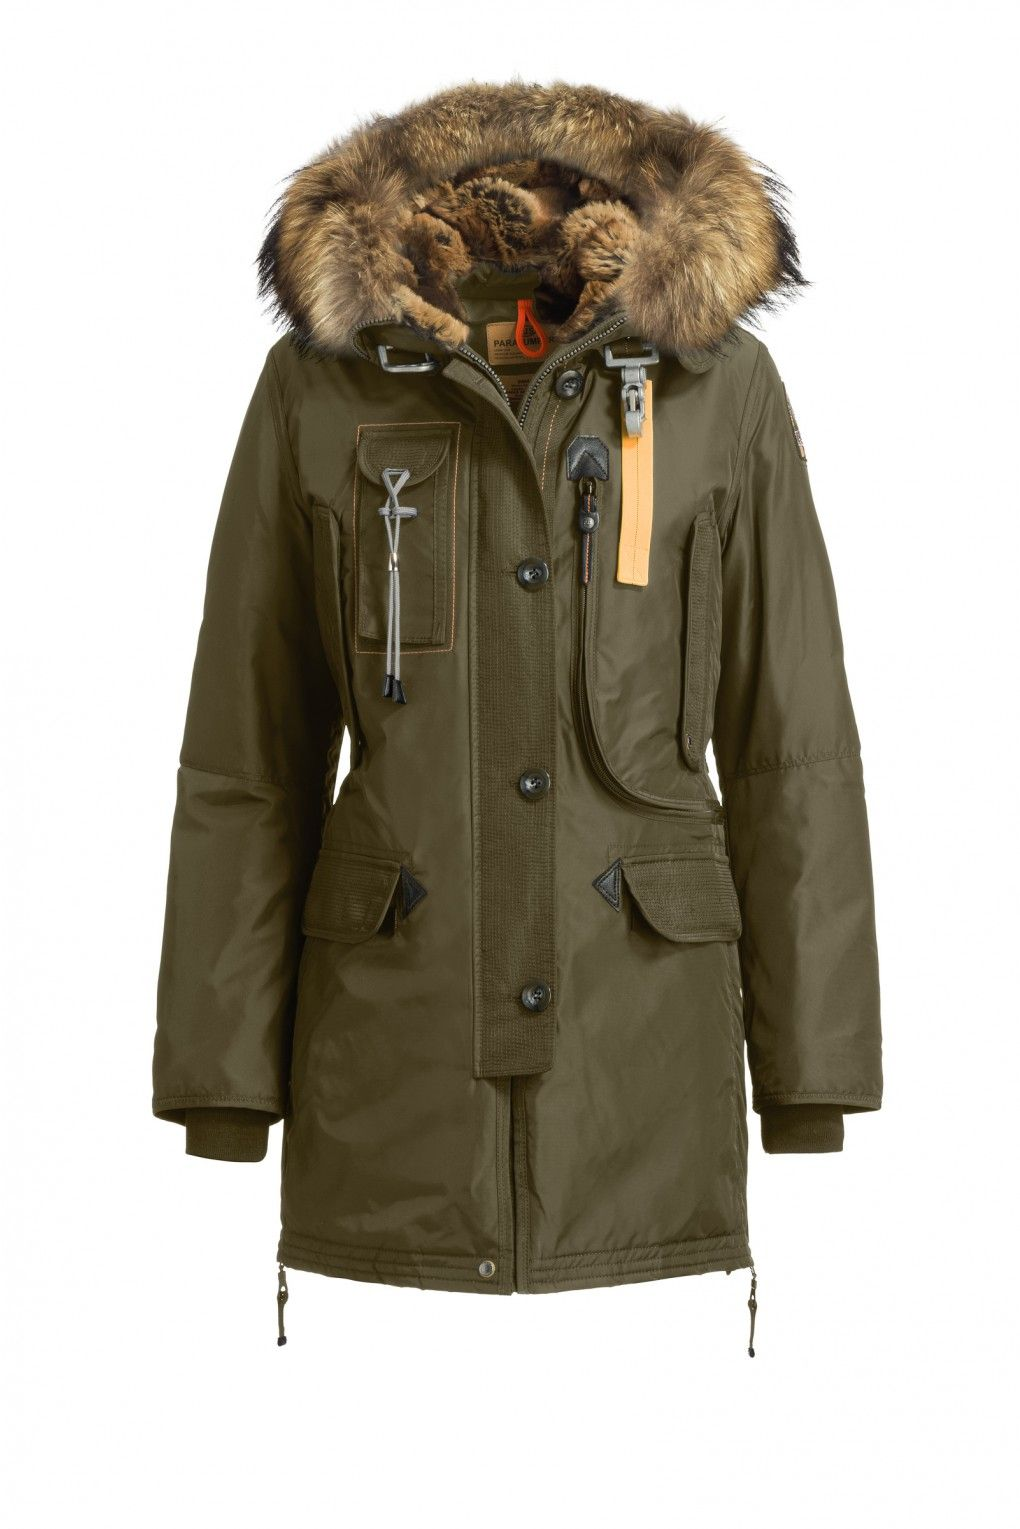 parajumpers women's kodiak coat